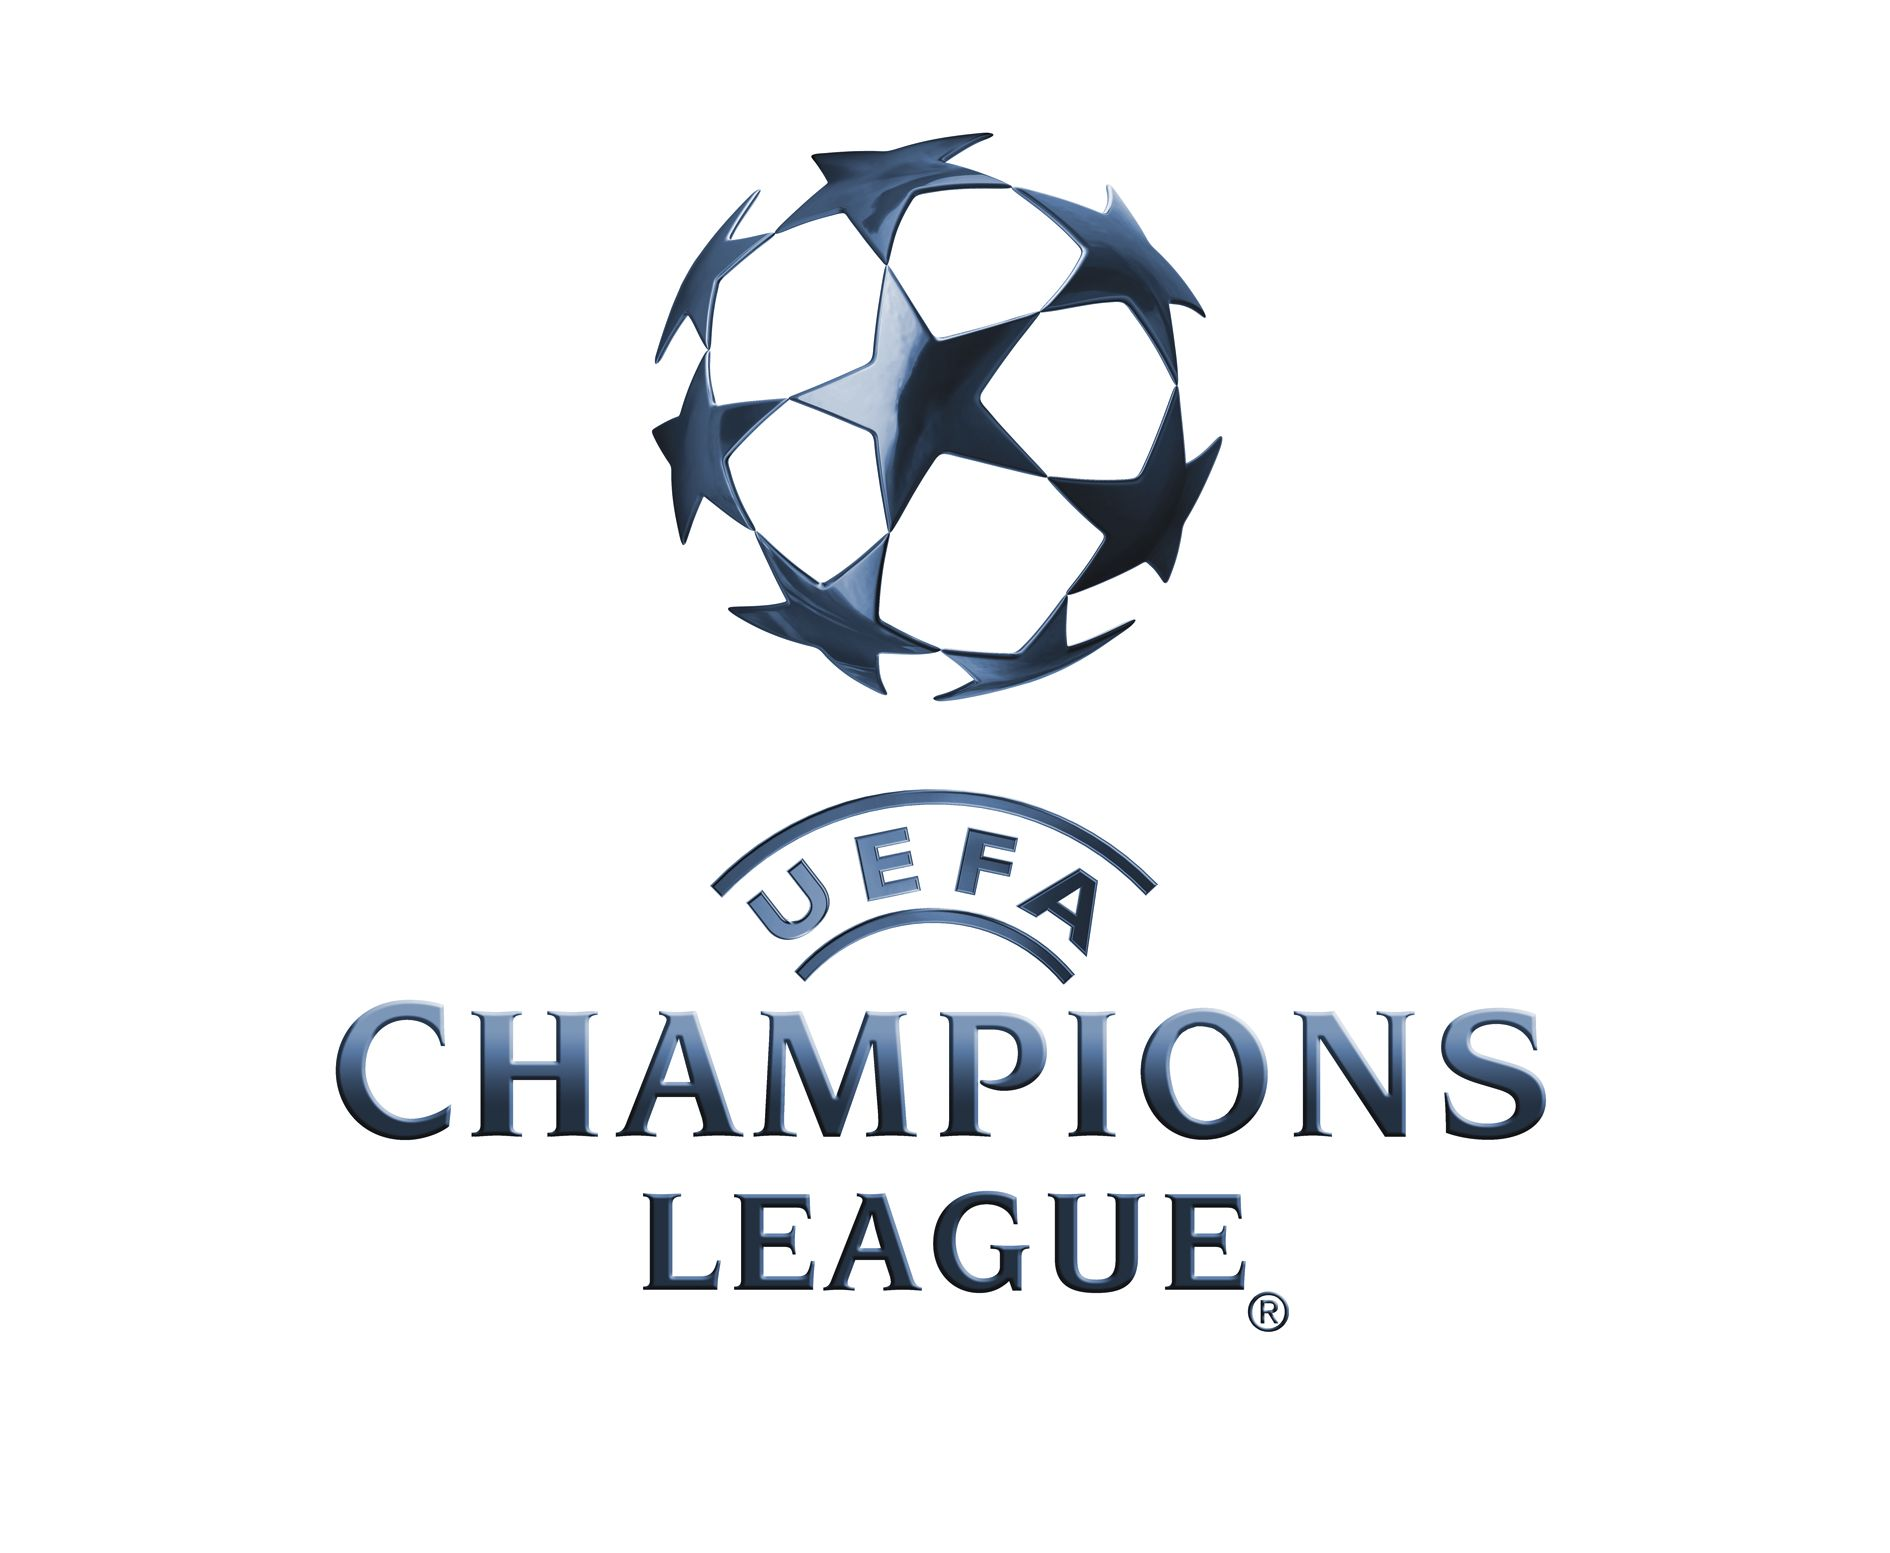 Champions League: UEFA Champions League Returns To Action